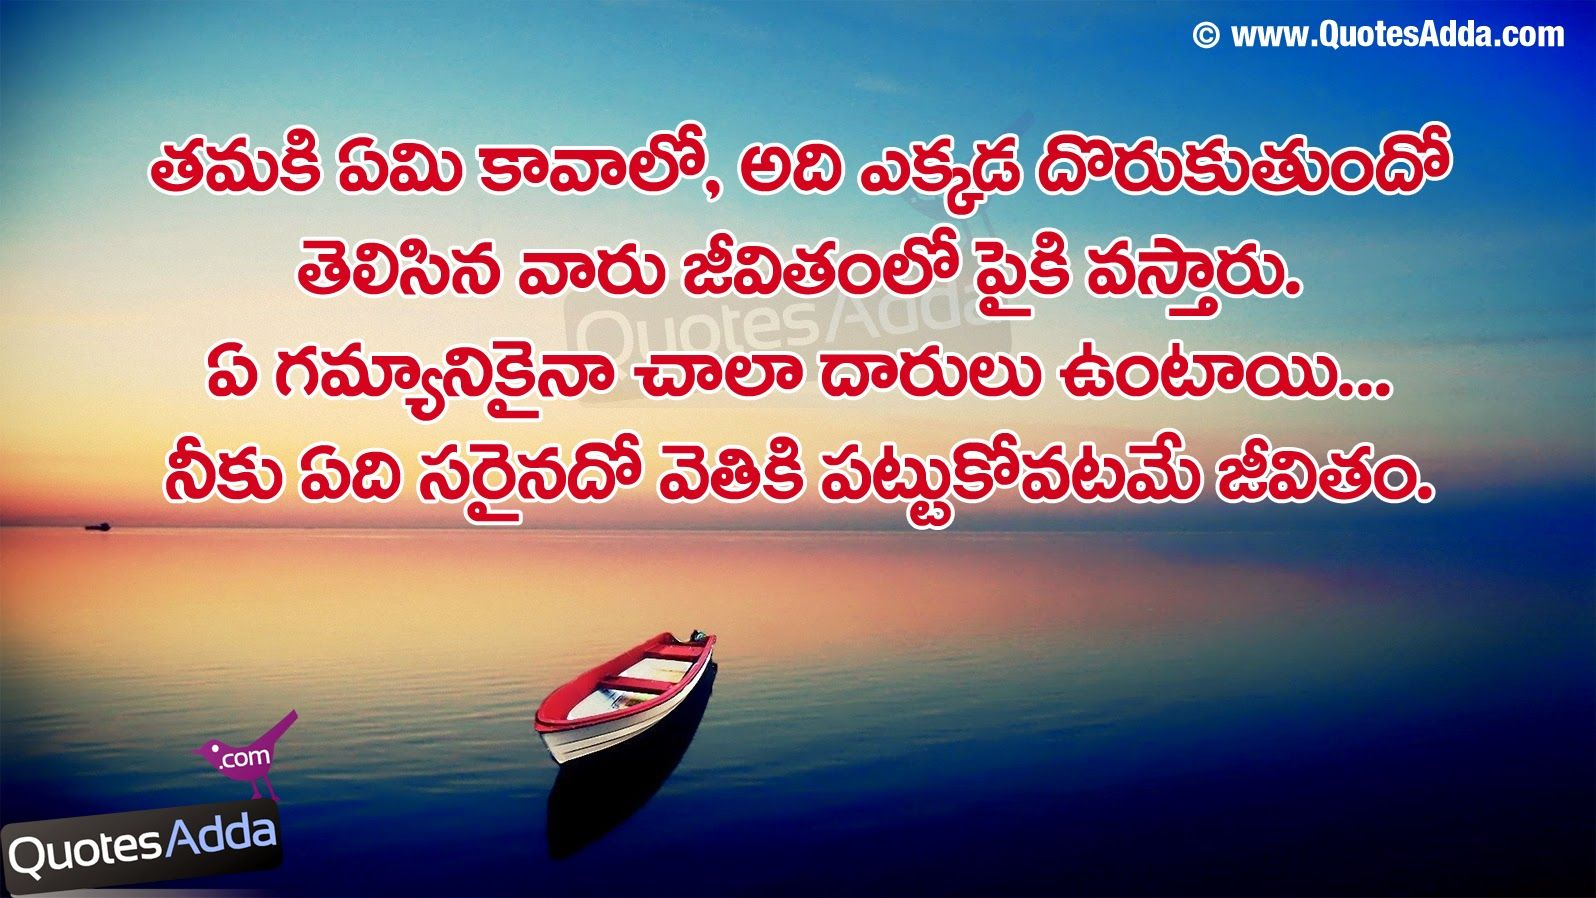 New Telugu Quotes On Life - HD Wallpaper